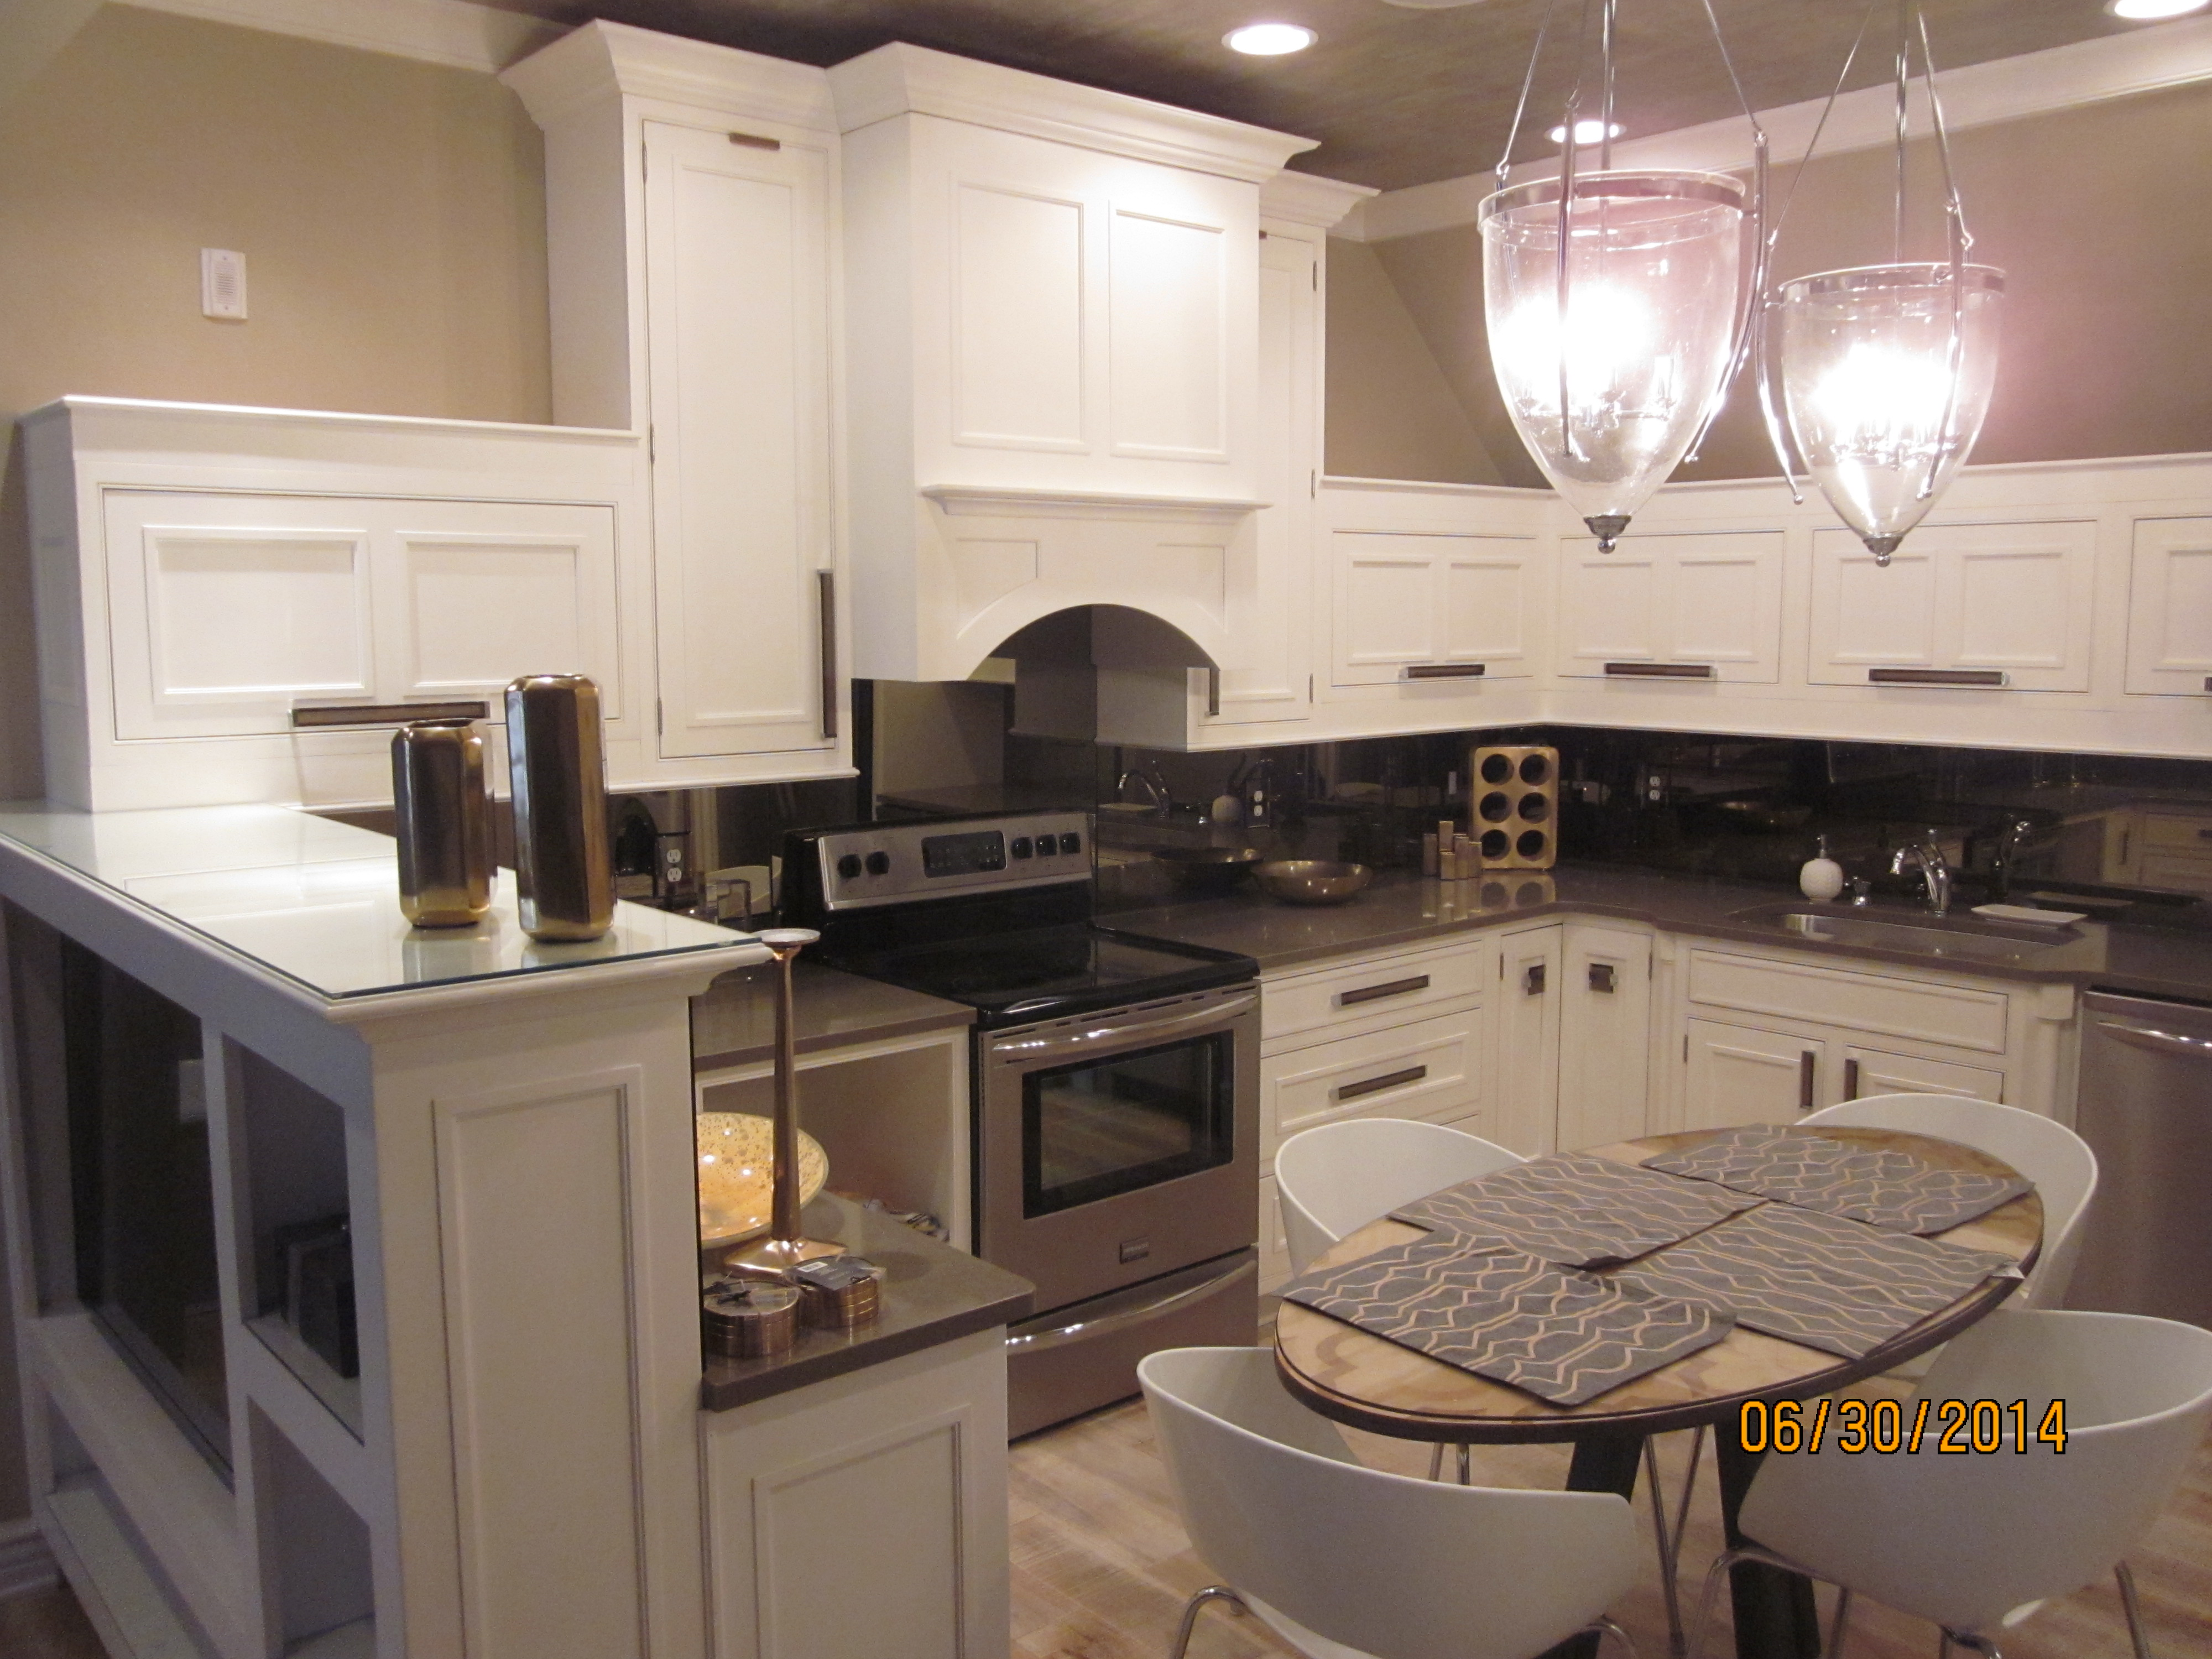 Cabinetry: Christian Kitchen